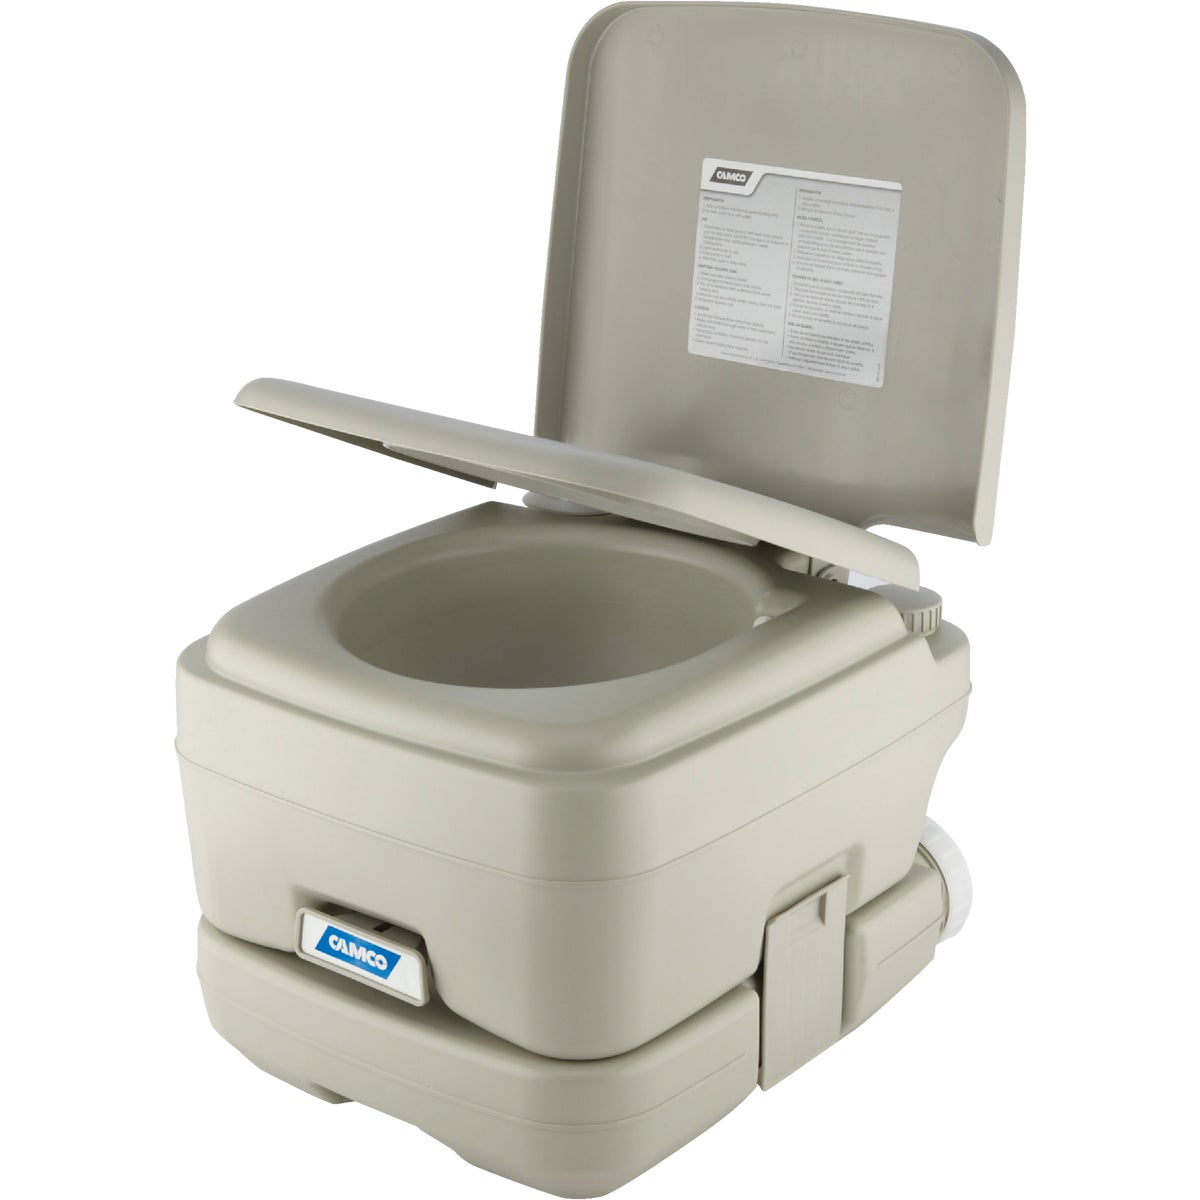 2.6GAL PORTABLE TOILET